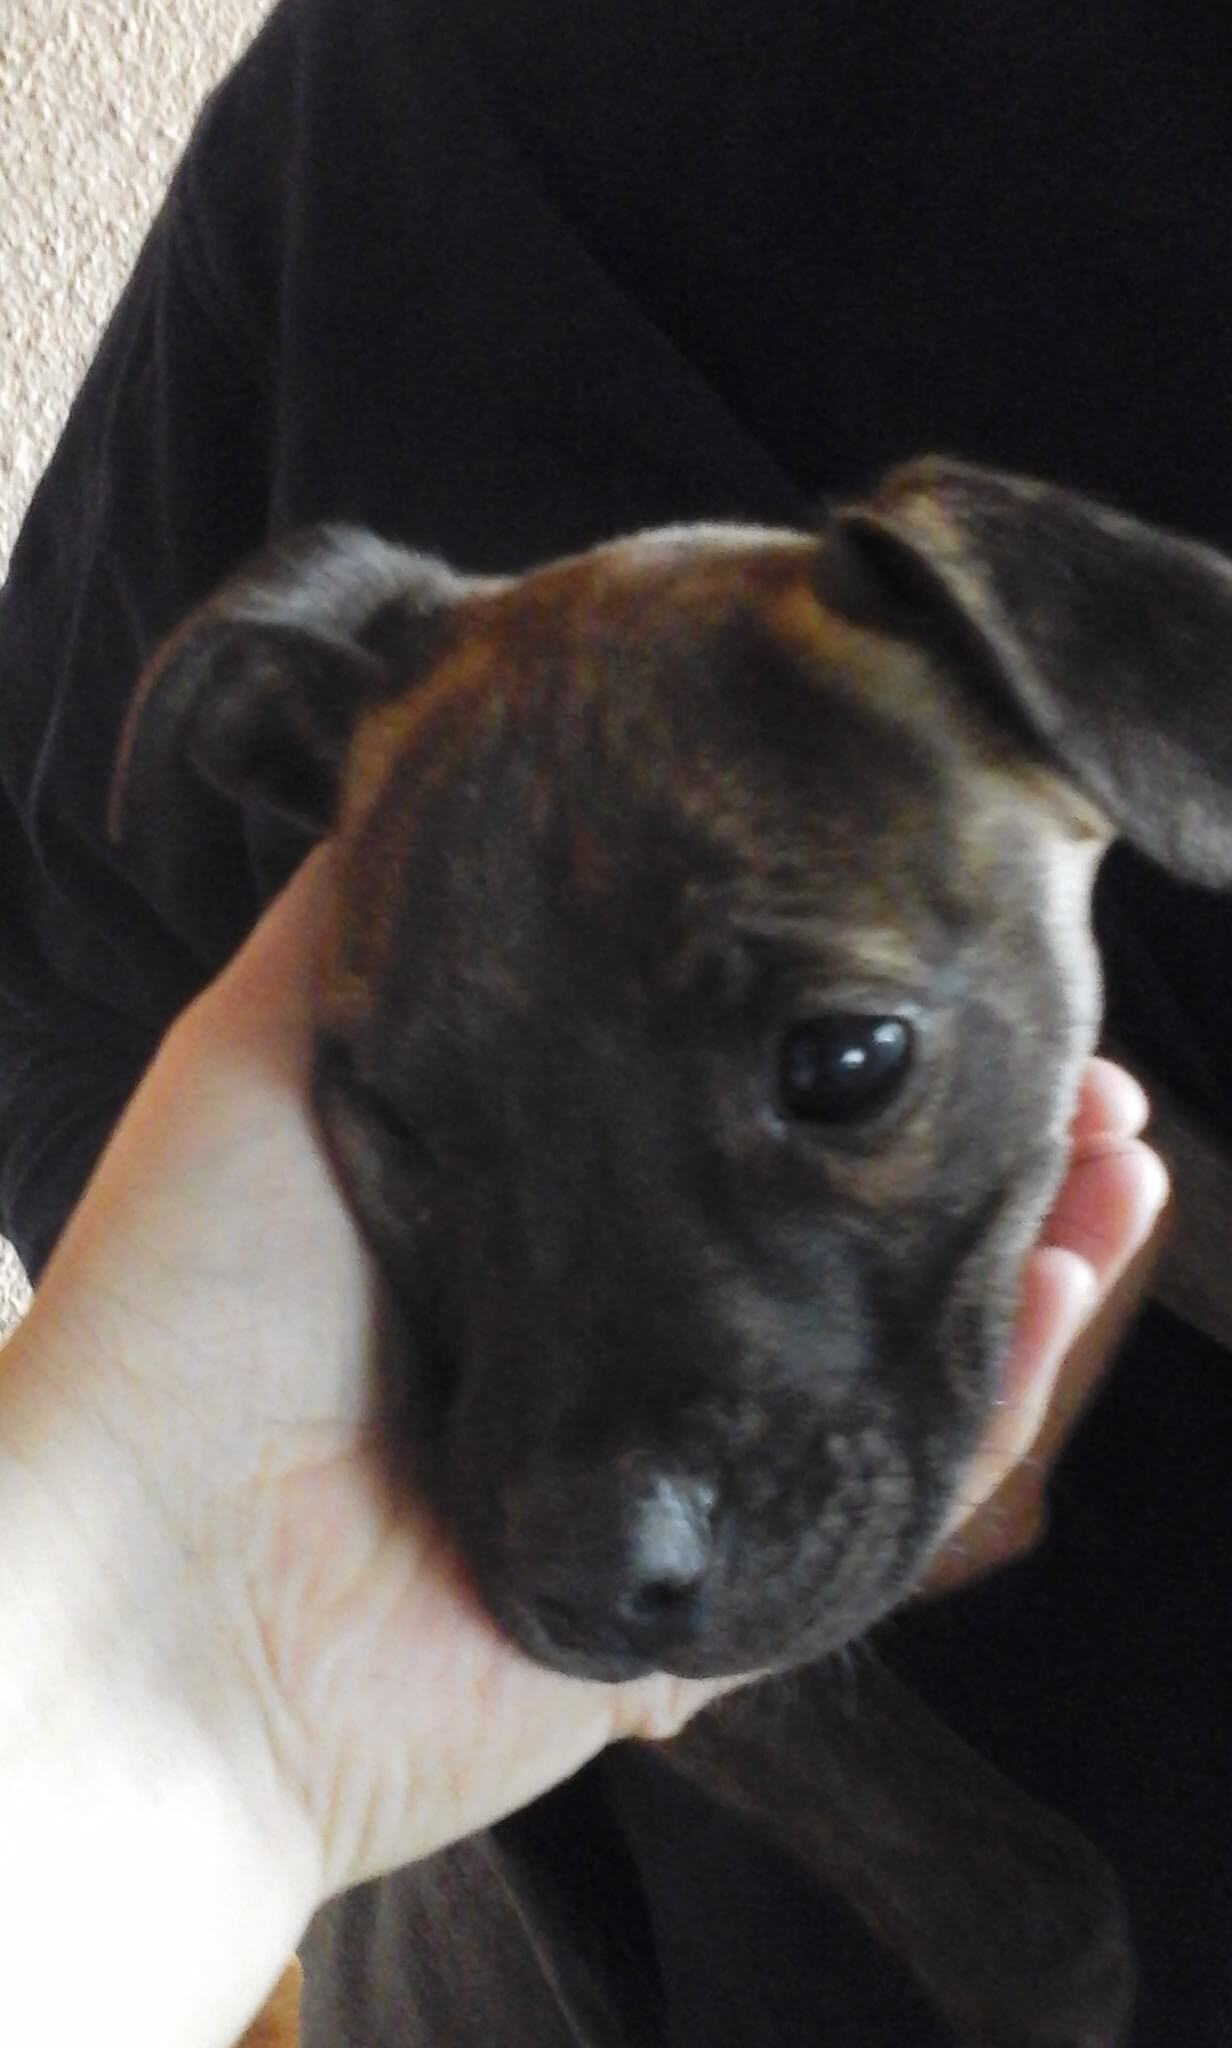 Staffie Puppies for Sale in Cape Town by Felicia Nel